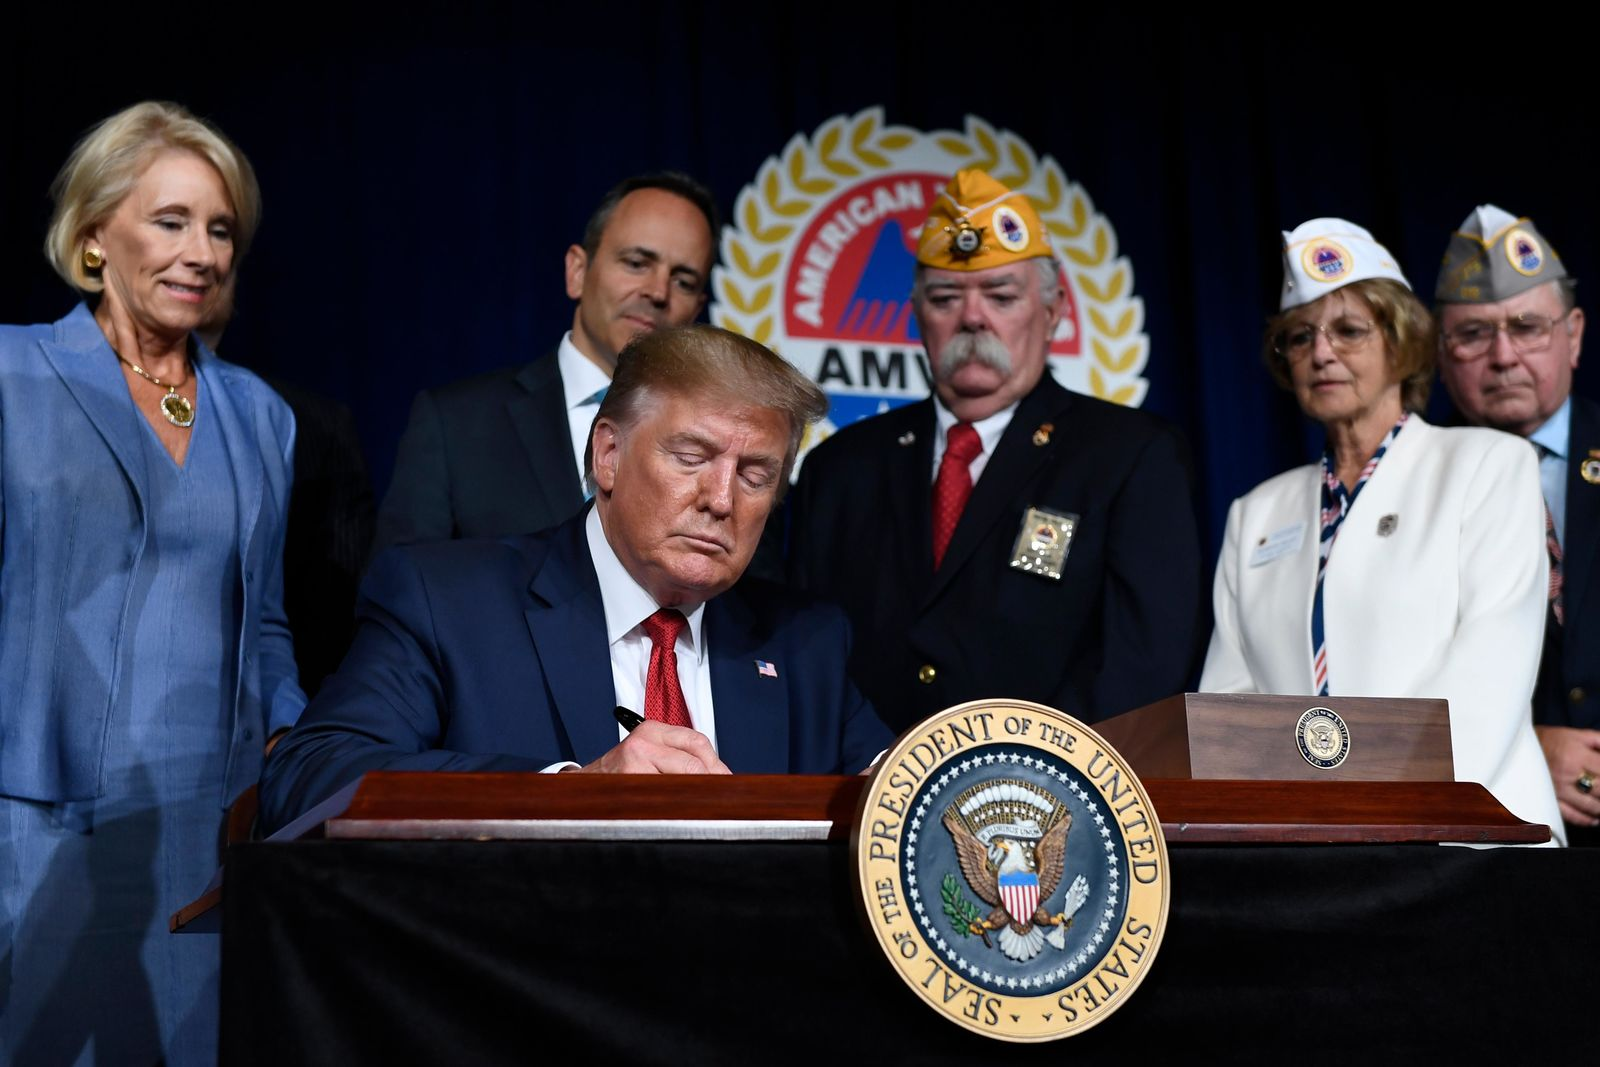 President Donald Trump signs a presidential memorandum that discharges the federal student loan debt of totally and permanently disabled veterans following his speech at the American Veterans (AMVETS) 75th National Convention in Louisville, Ky., Wednesday, Aug. 21, 2019. (AP Photo/Susan Walsh)